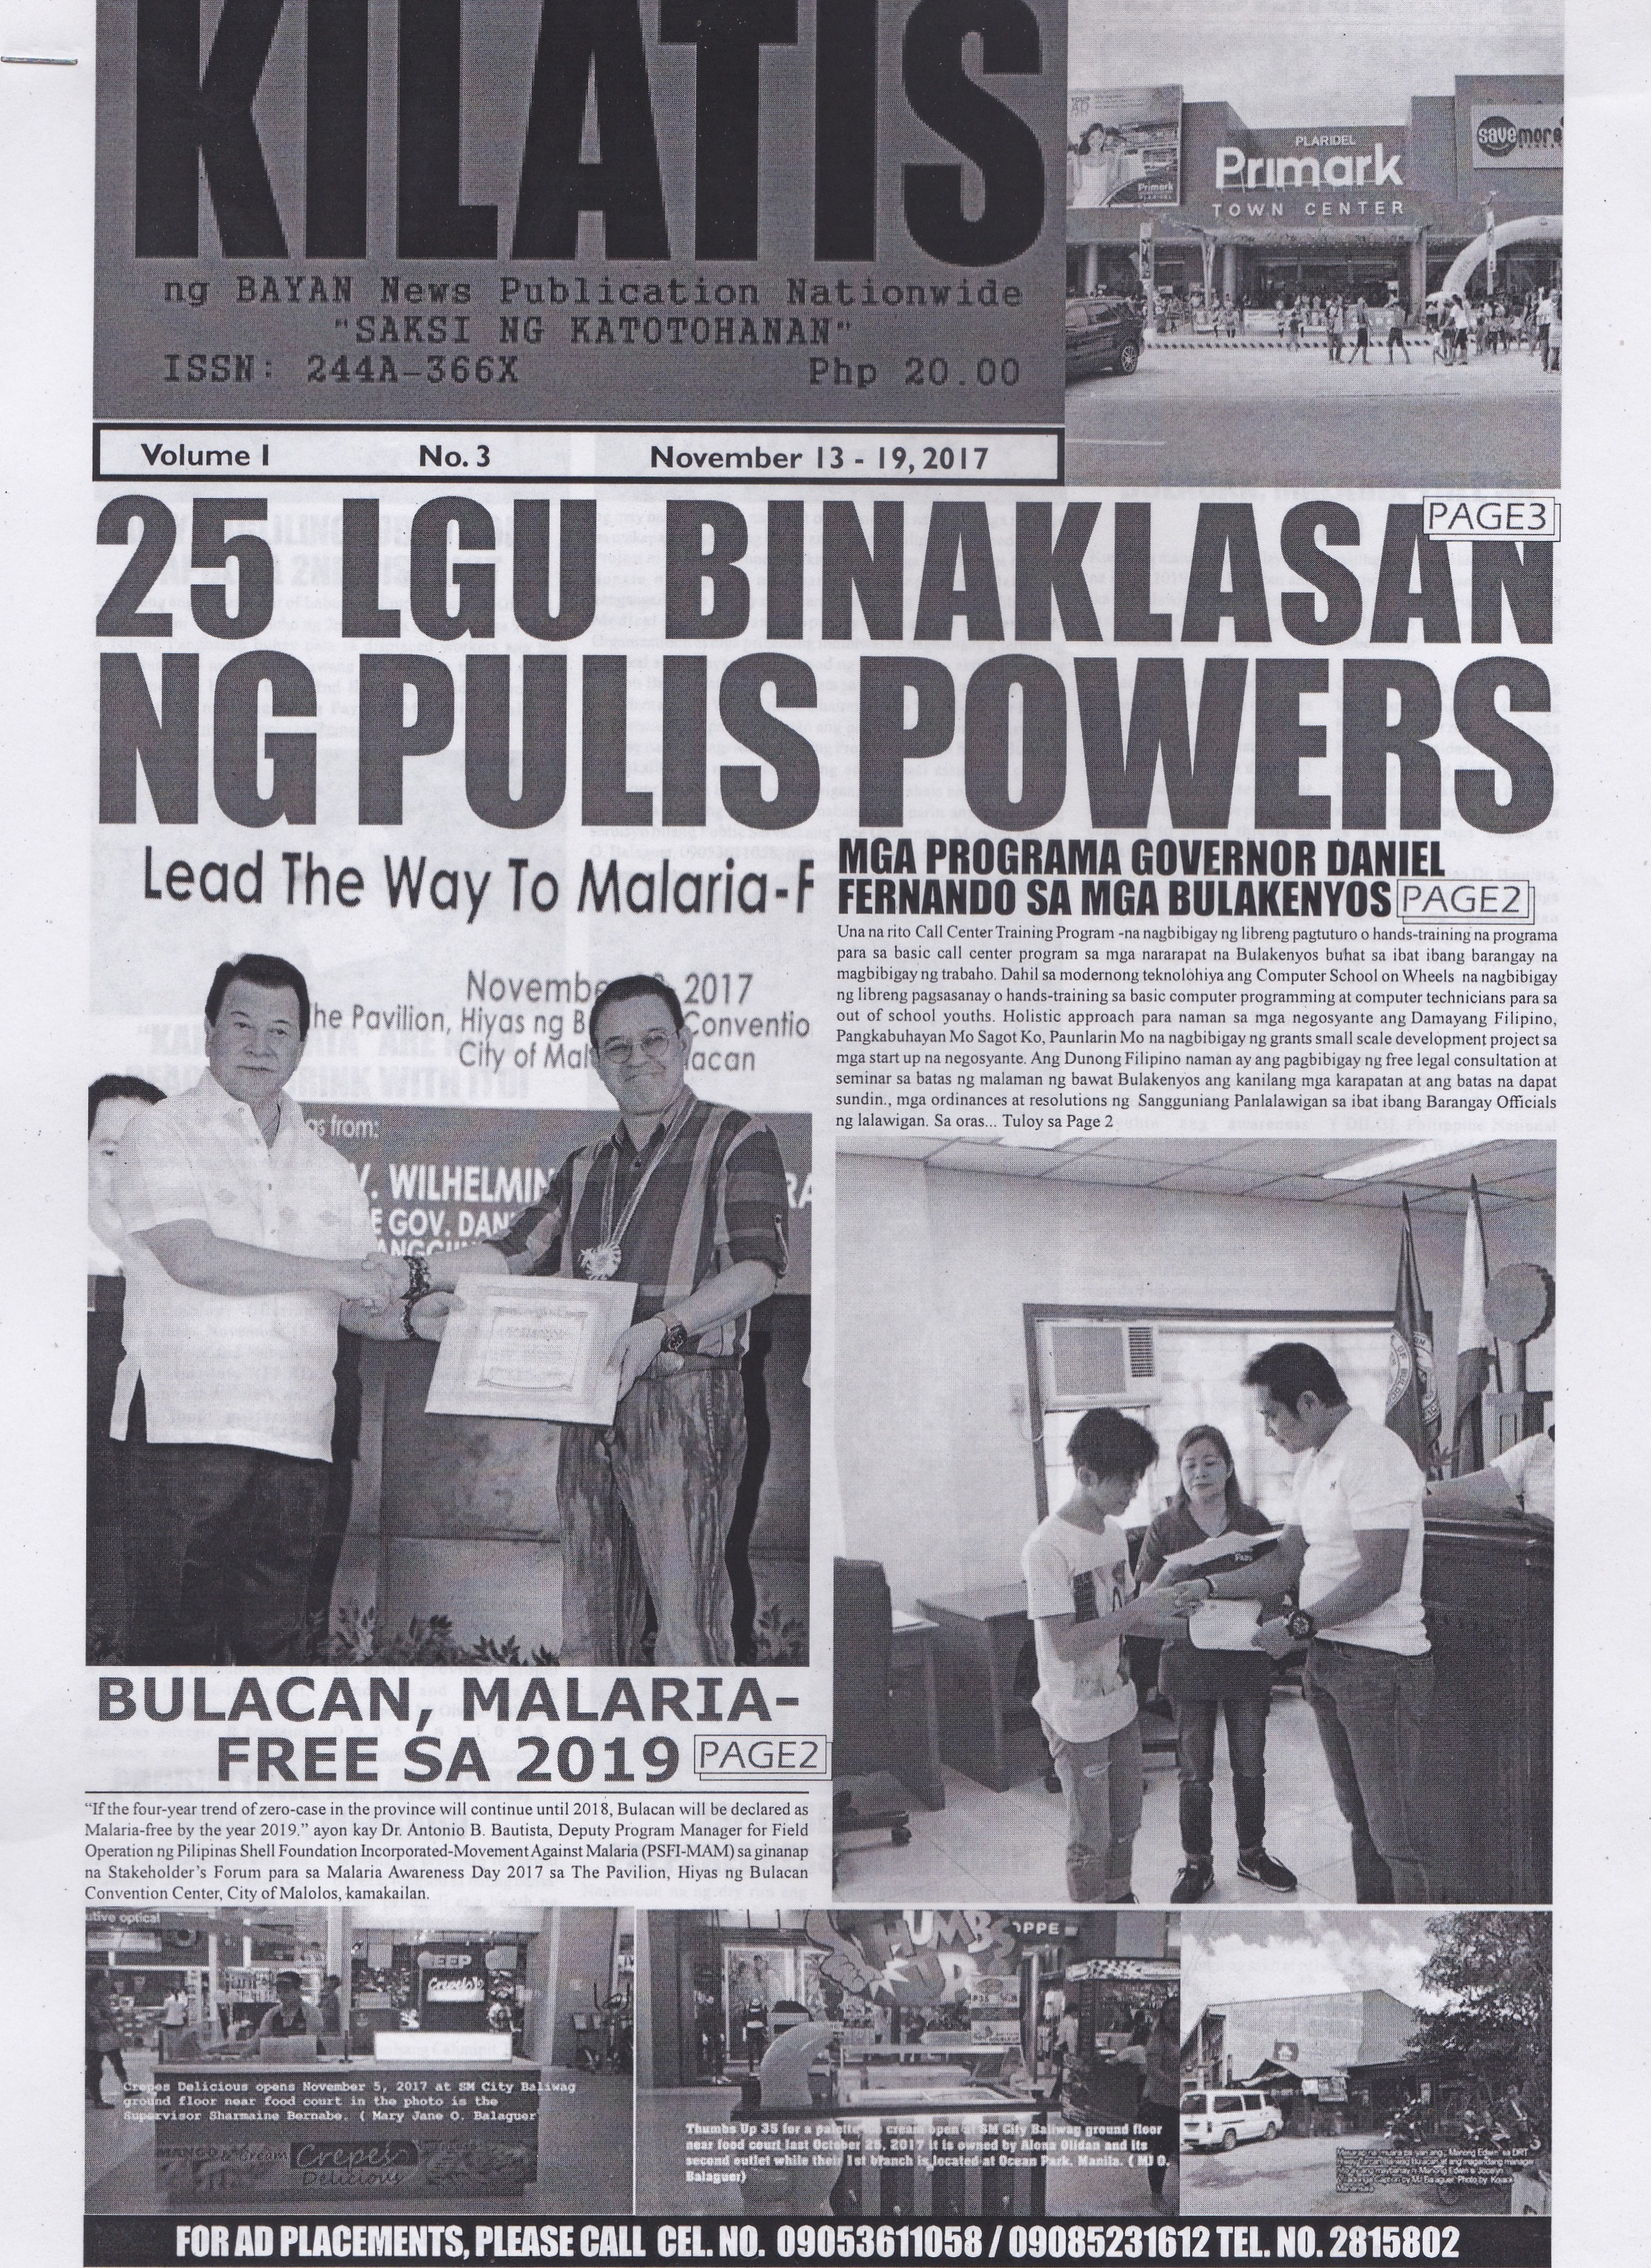 KILATIS ng bayan news publication third issue 111311102017